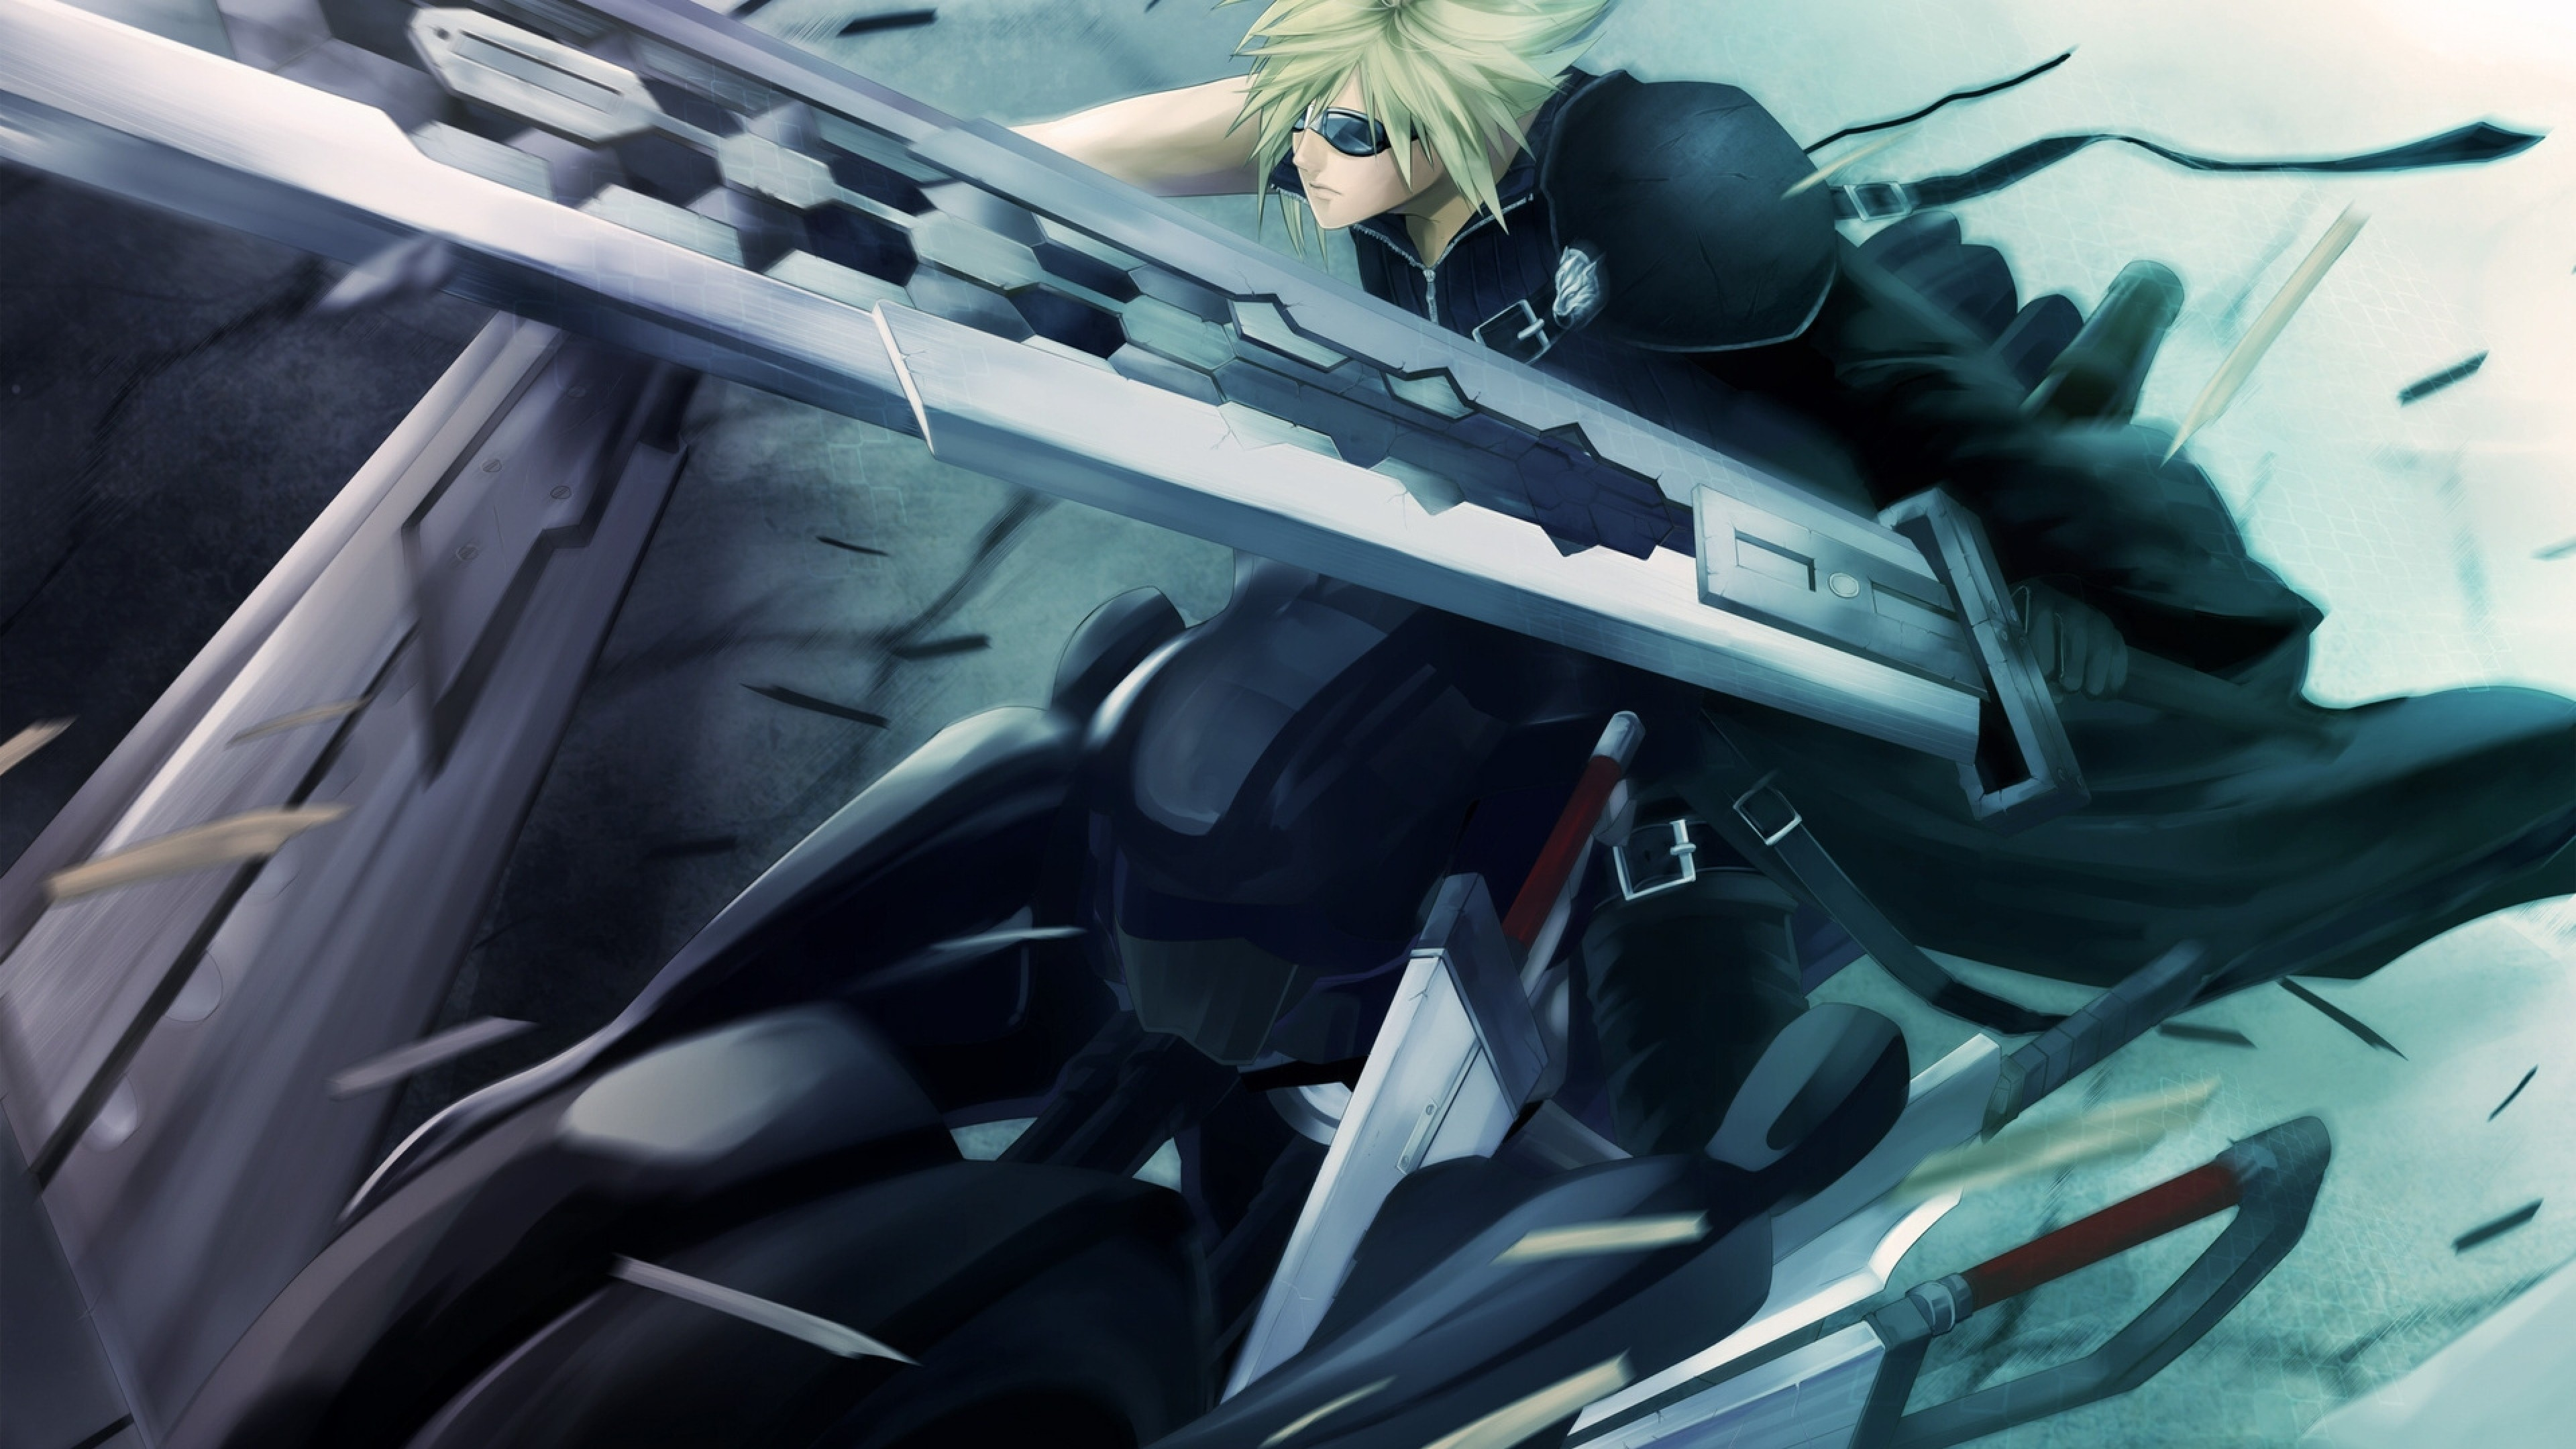 3840x2160 Sephiroth Final Fantasy VII Advent Children Mobile Wallpaper